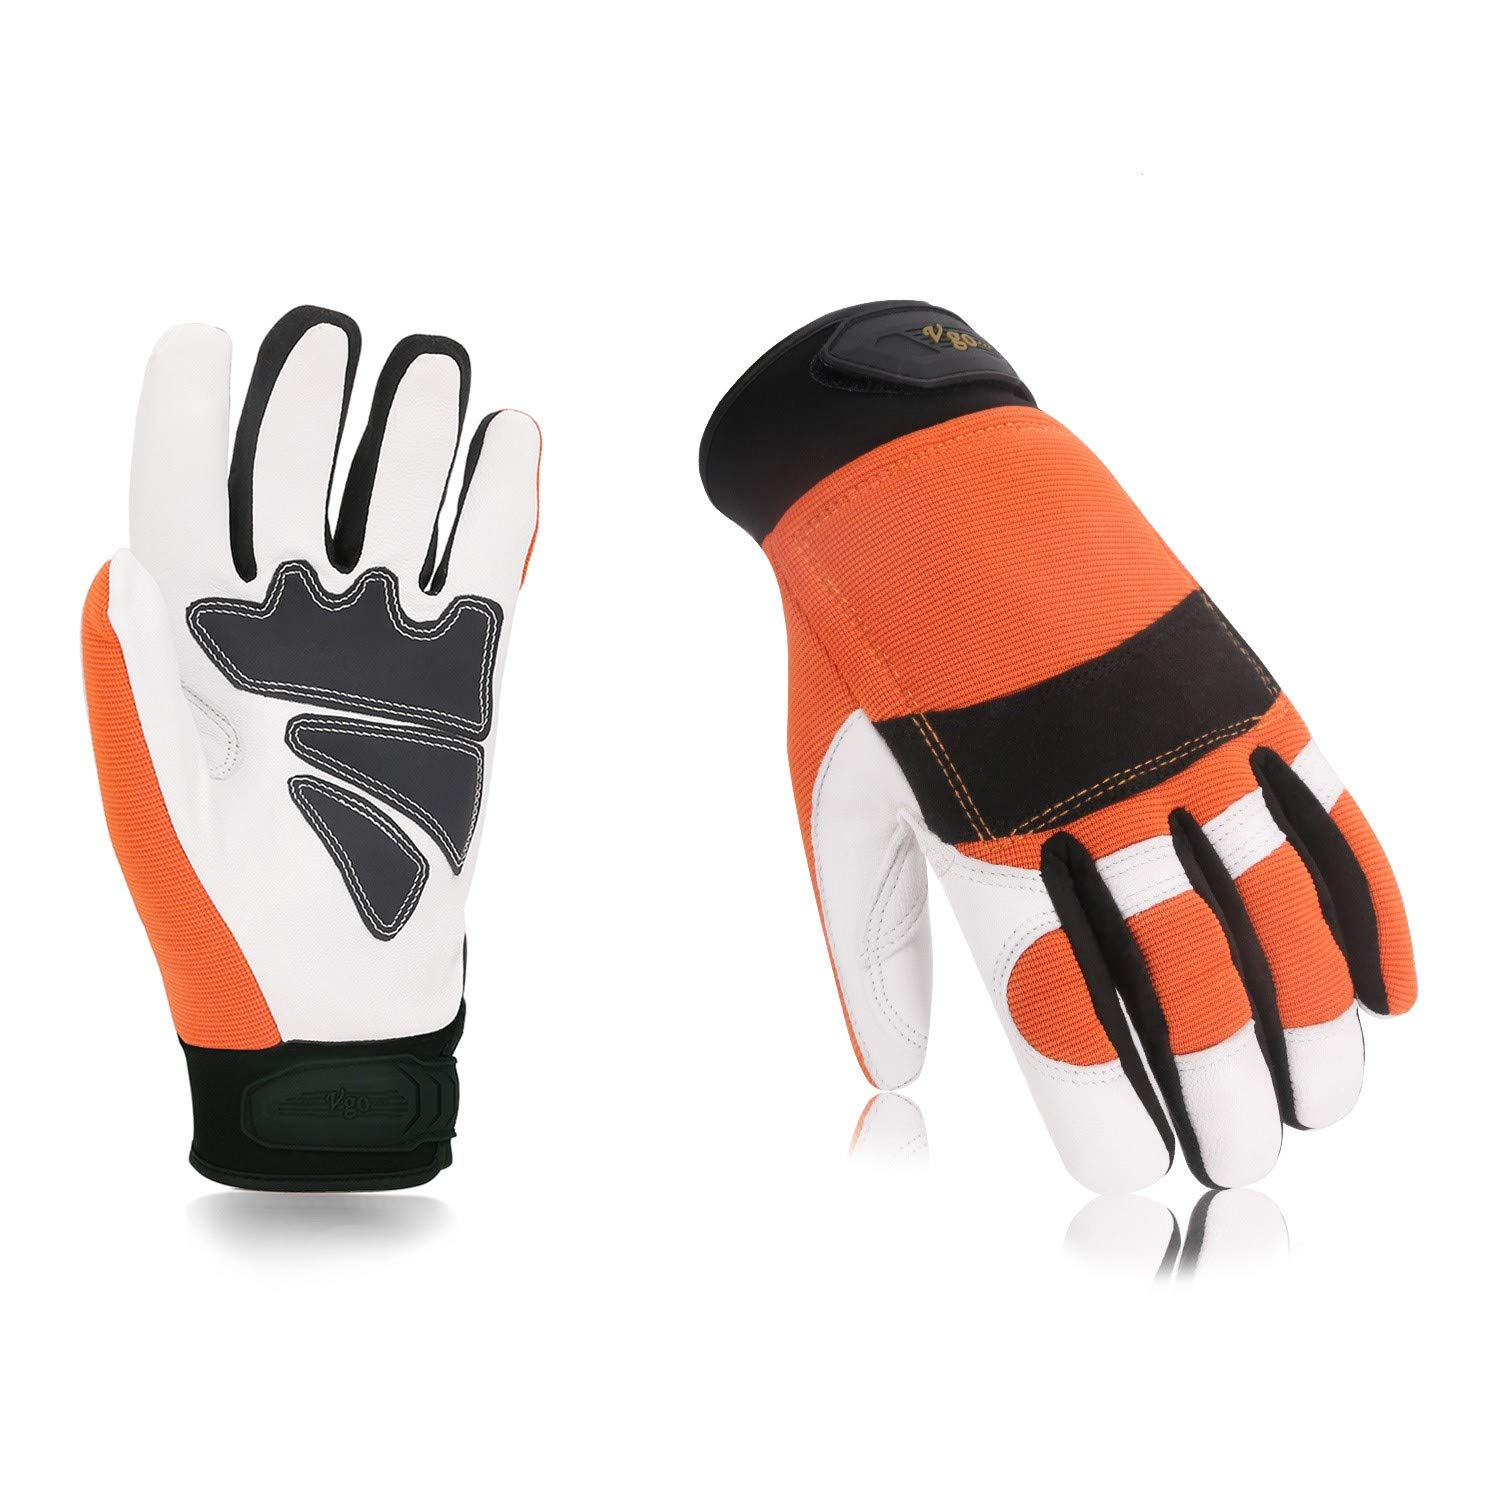 Vgo EN381-7 Standard,Class 1,Goatskin Leather Left Hand for Extra Cut Resistance, Chainsaw Protection Gloves(1Pair,Size L,Orange,GA8912) Laborsing Safety Products Inc.